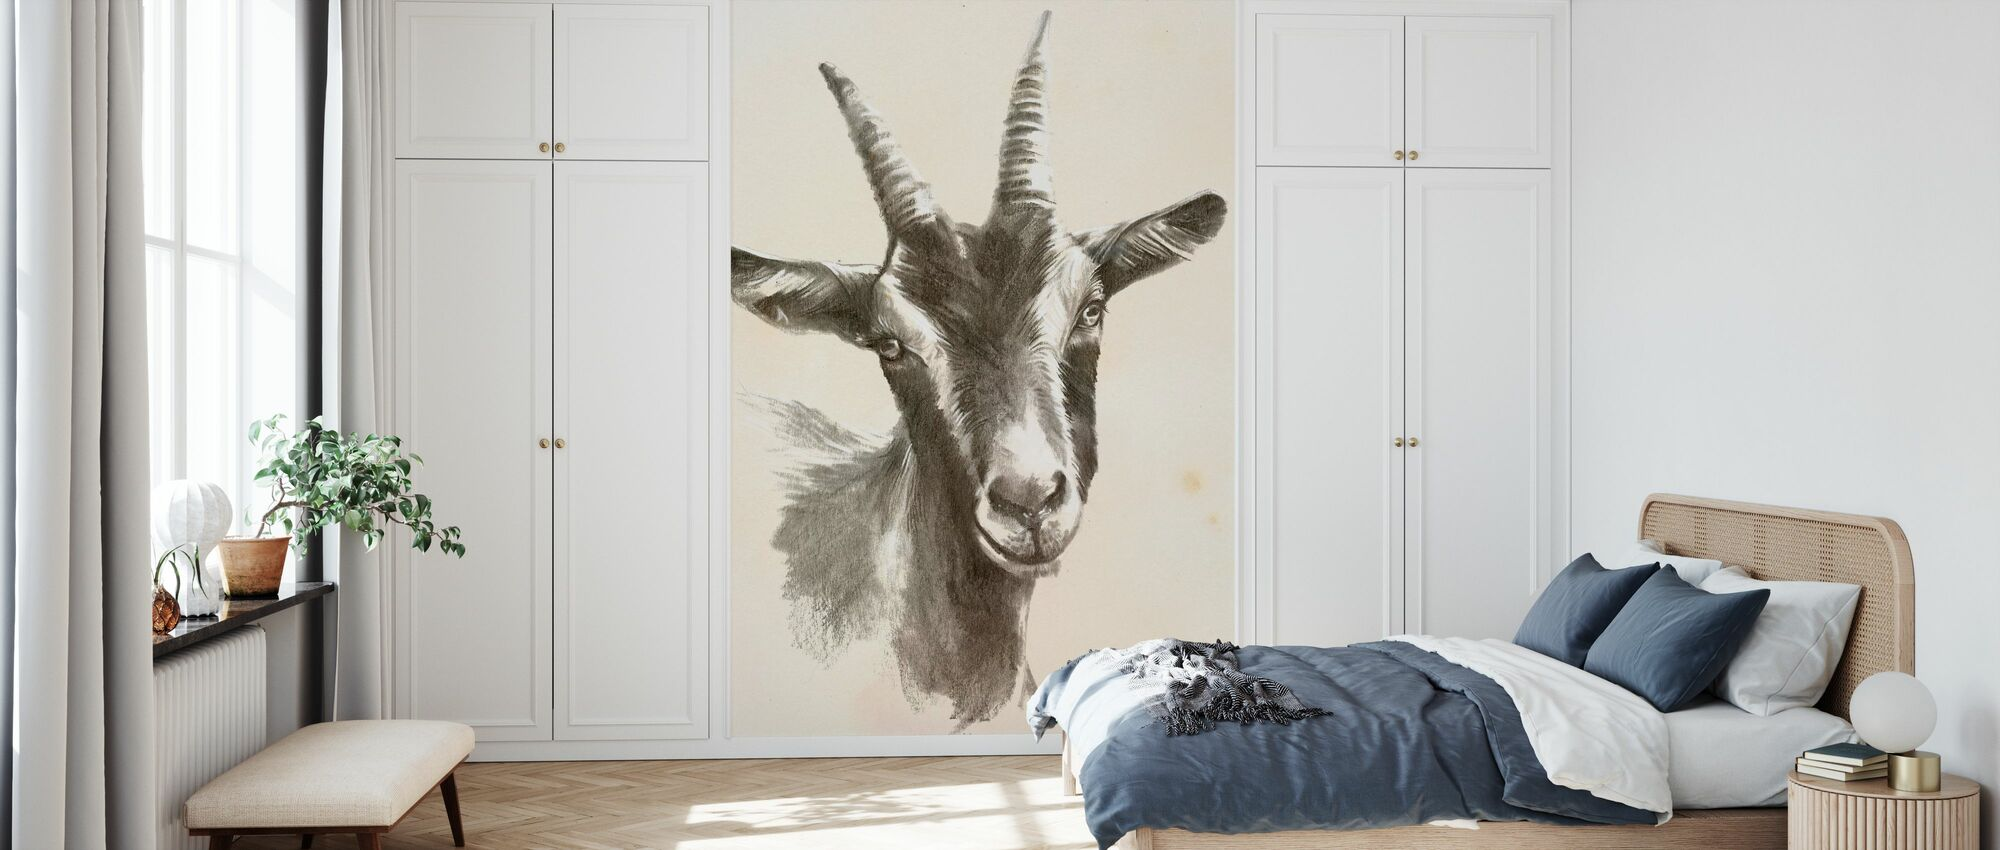 Sketched Farm Portraits II - Wallpaper - Bedroom